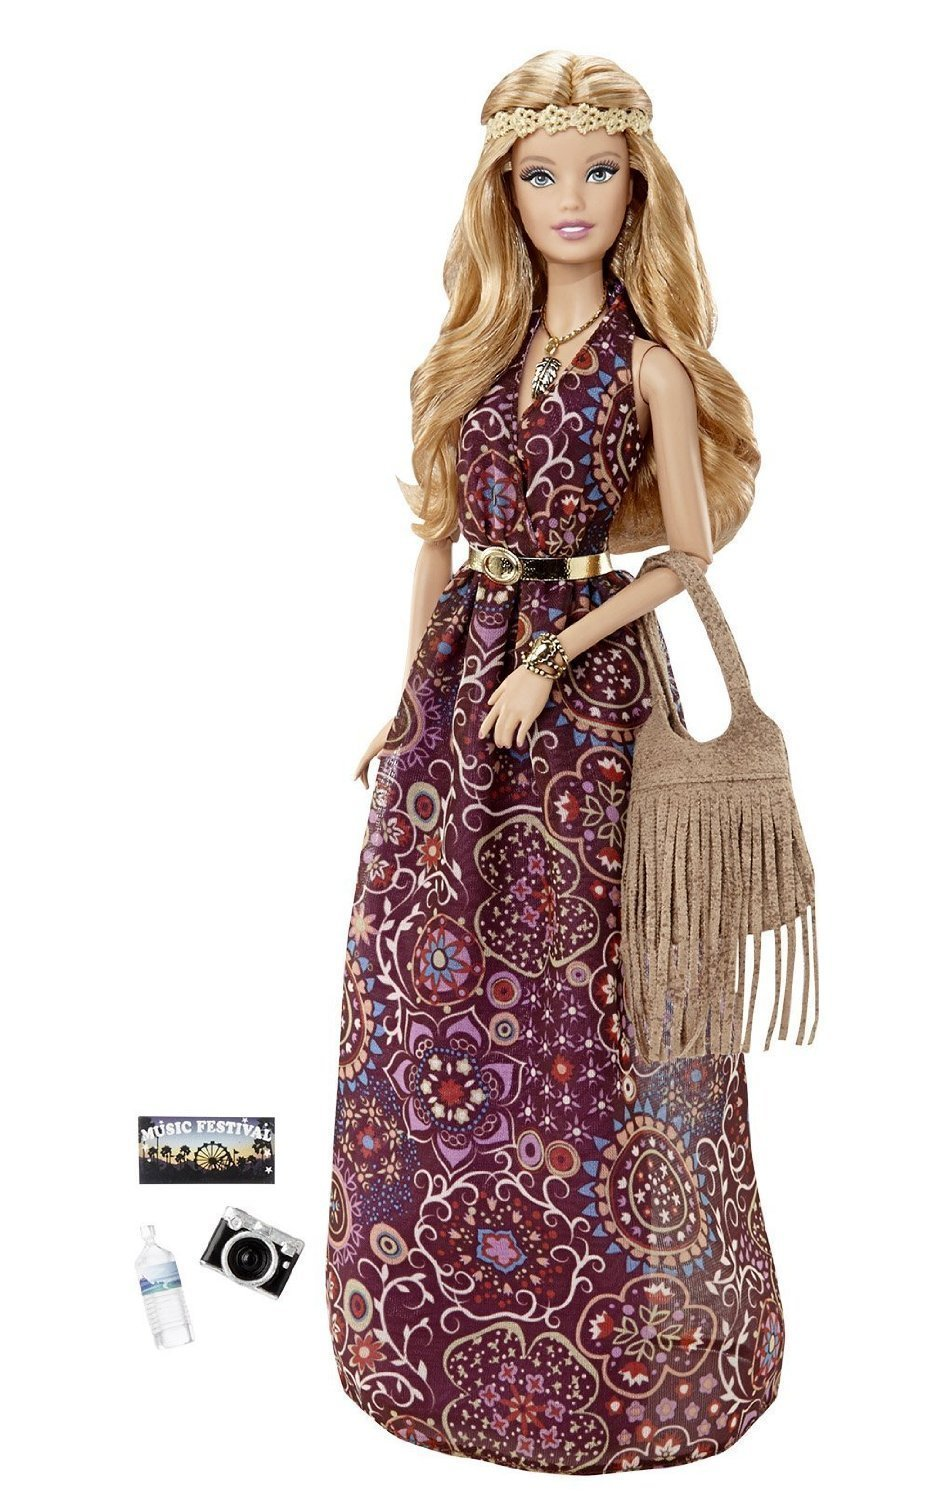 barbie doll. The Barbie Look: Music Festival - Doll Image